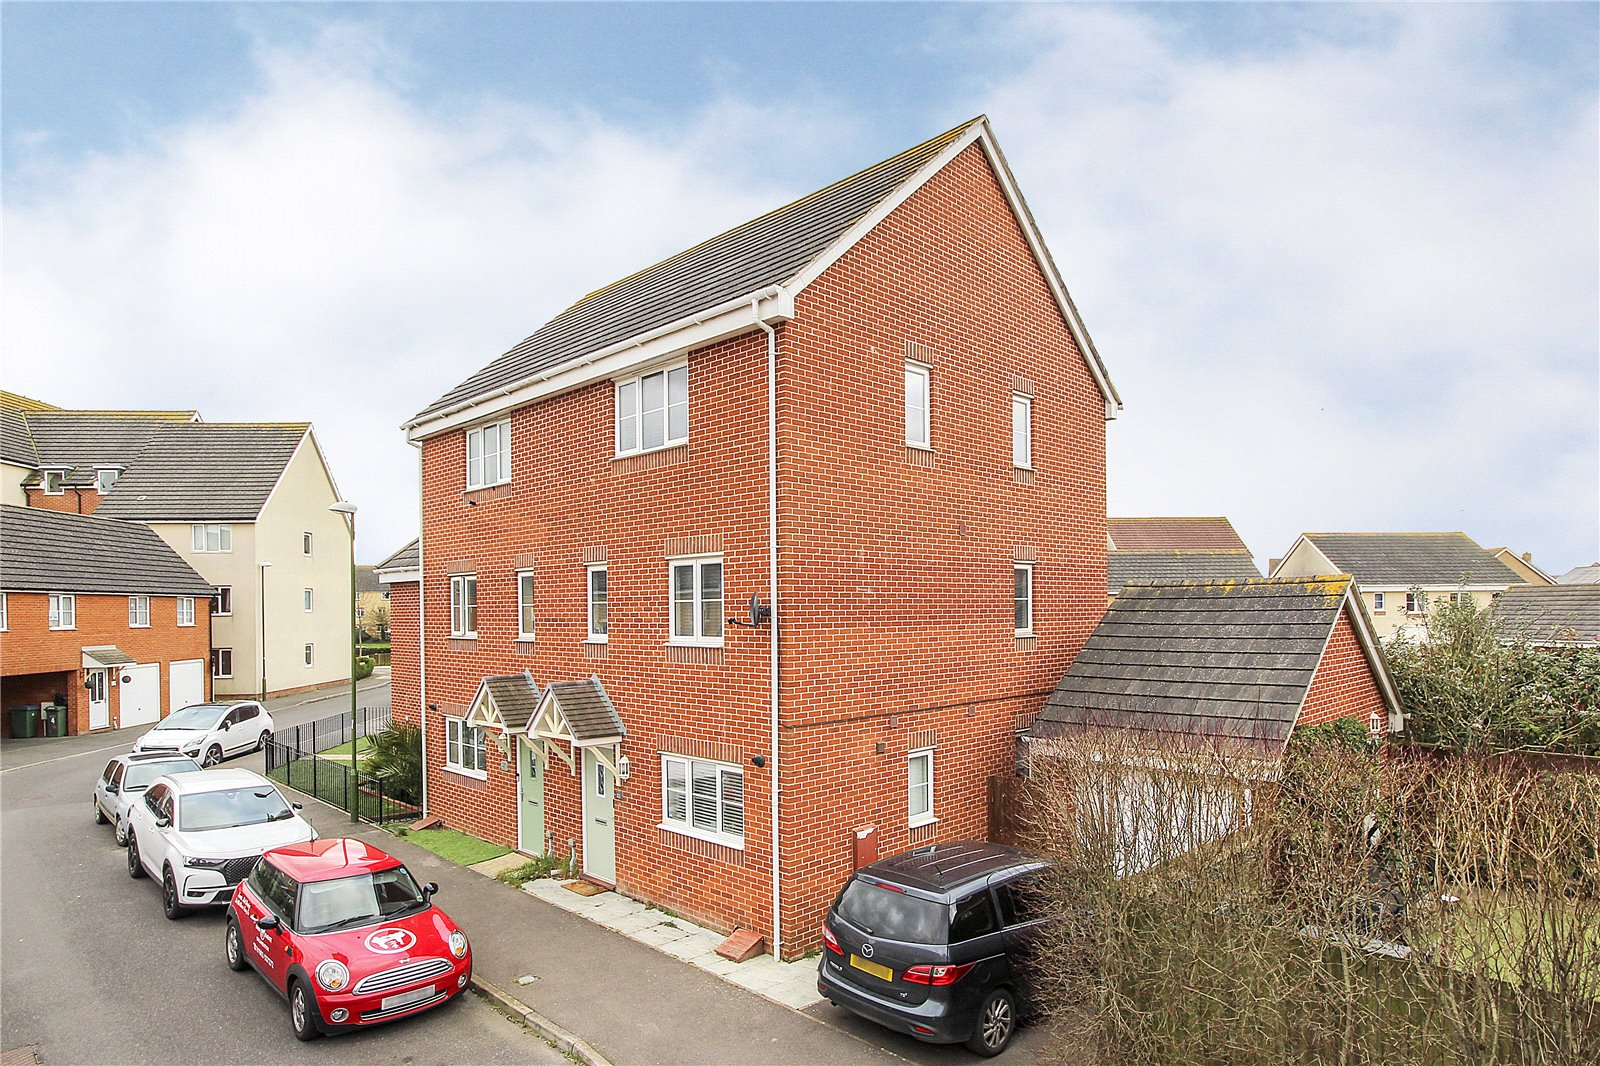 4 bed house for sale in Cheal Way, Littlehampton, BN17